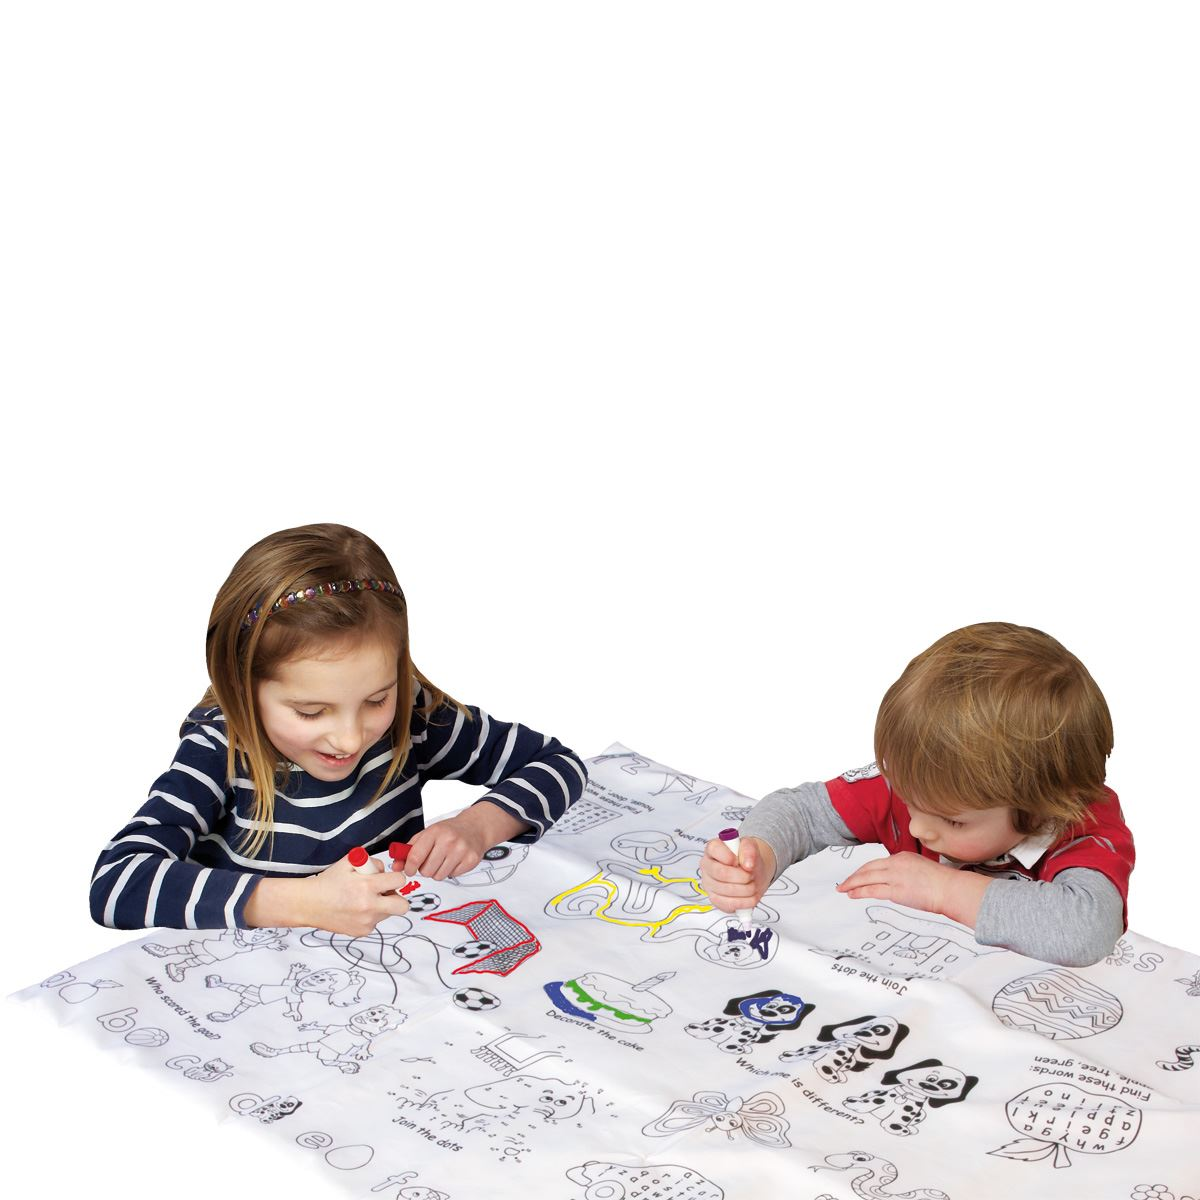 Colour In Activity Table Cloth Picnic Blanket Draw